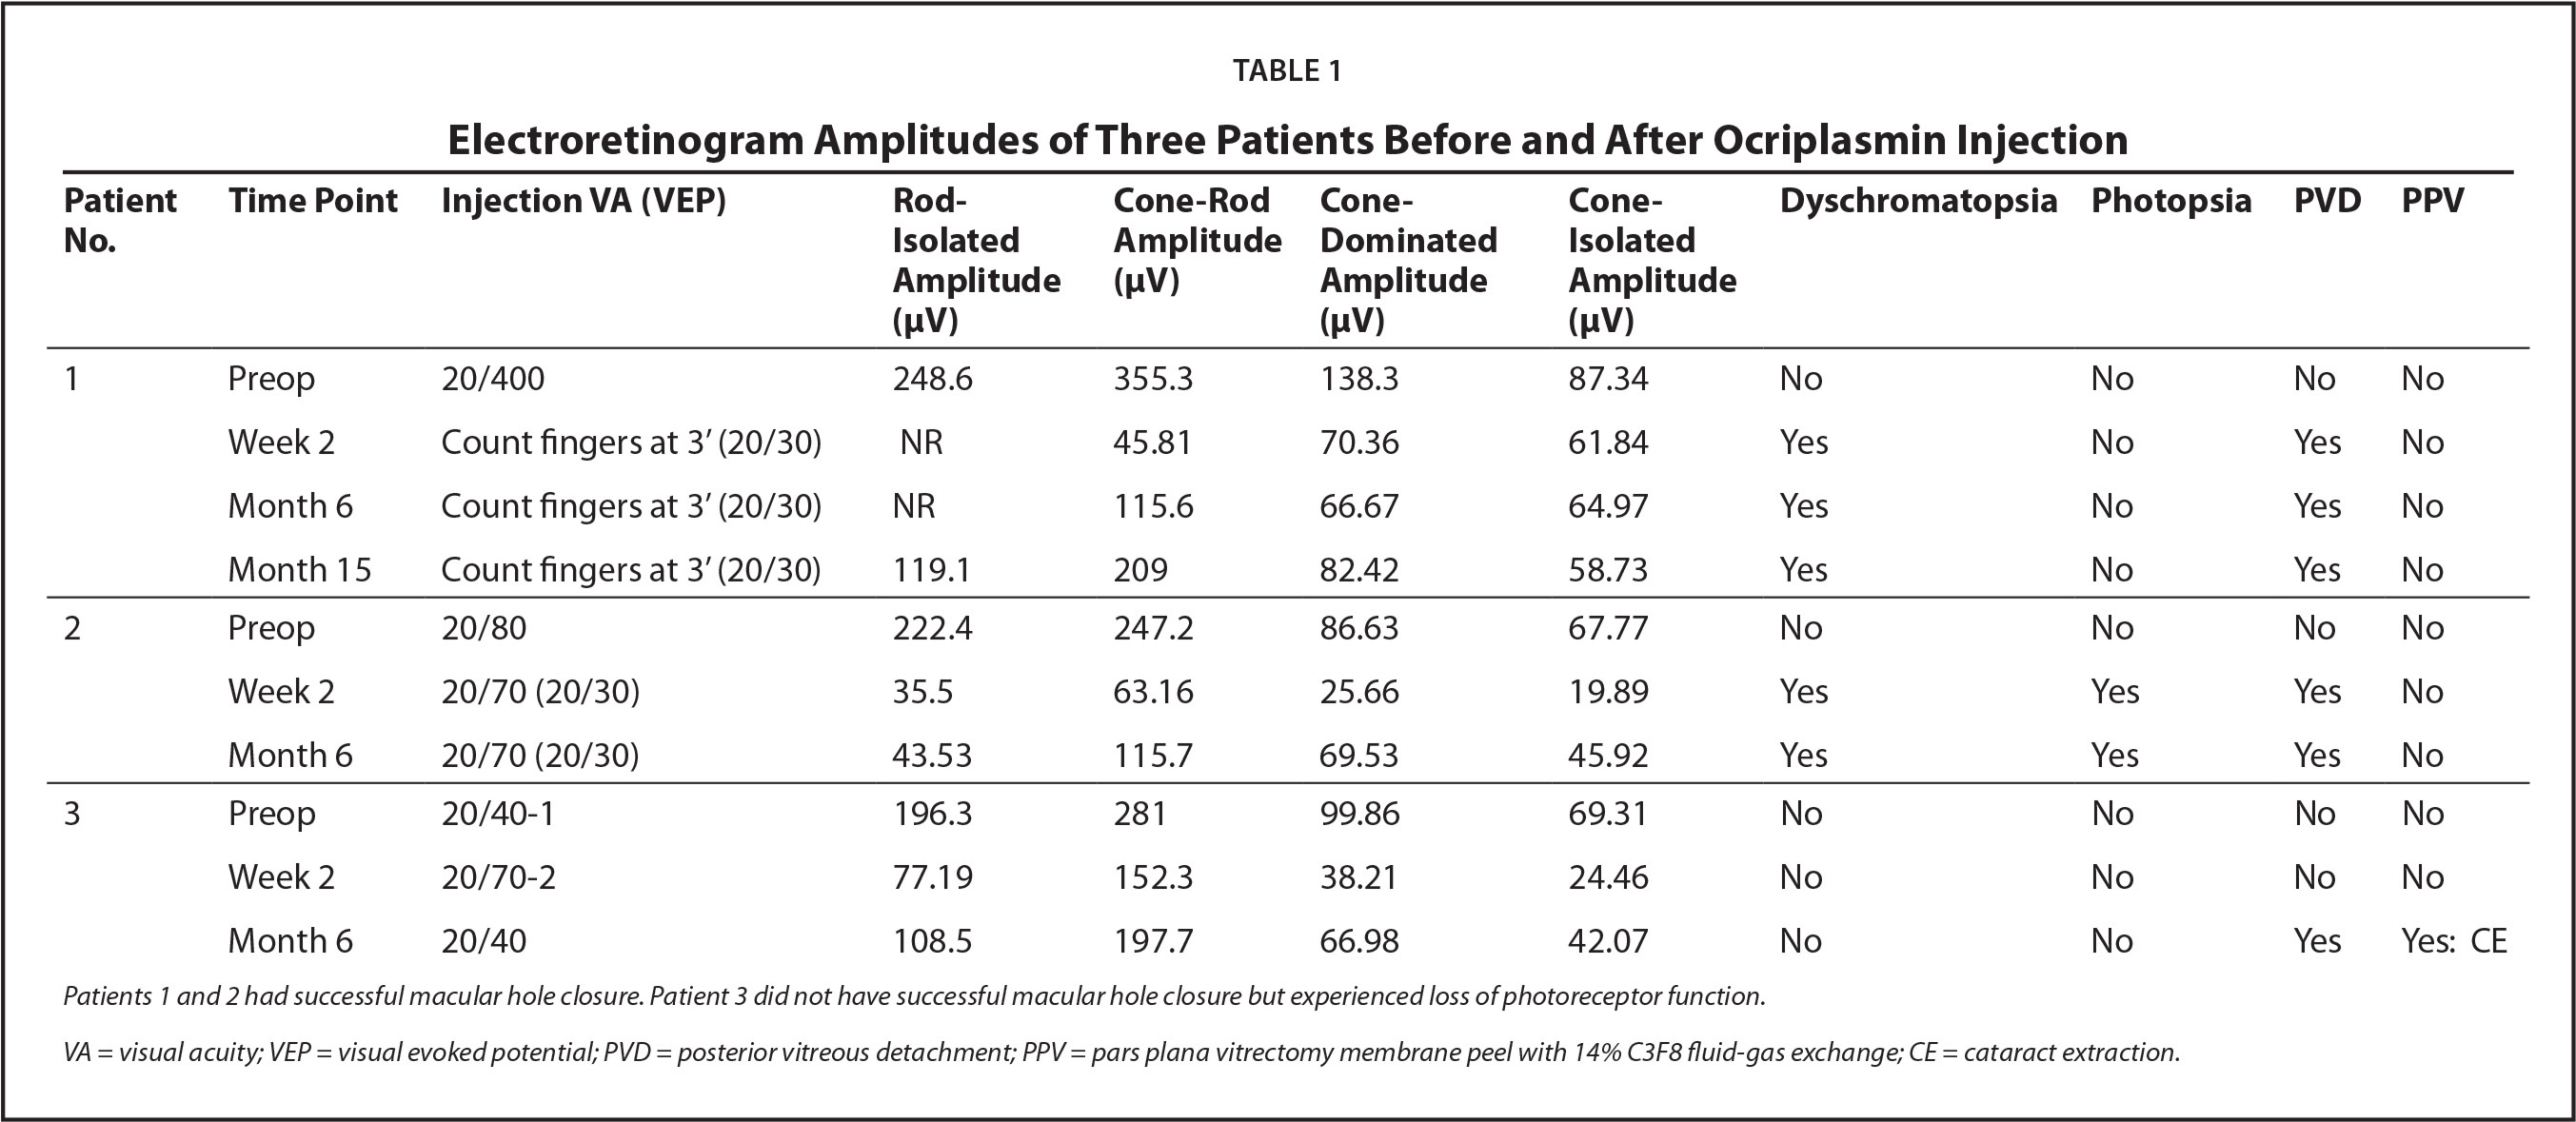 Electroretinogram Amplitudes of Three Patients Before and After Ocriplasmin Injection